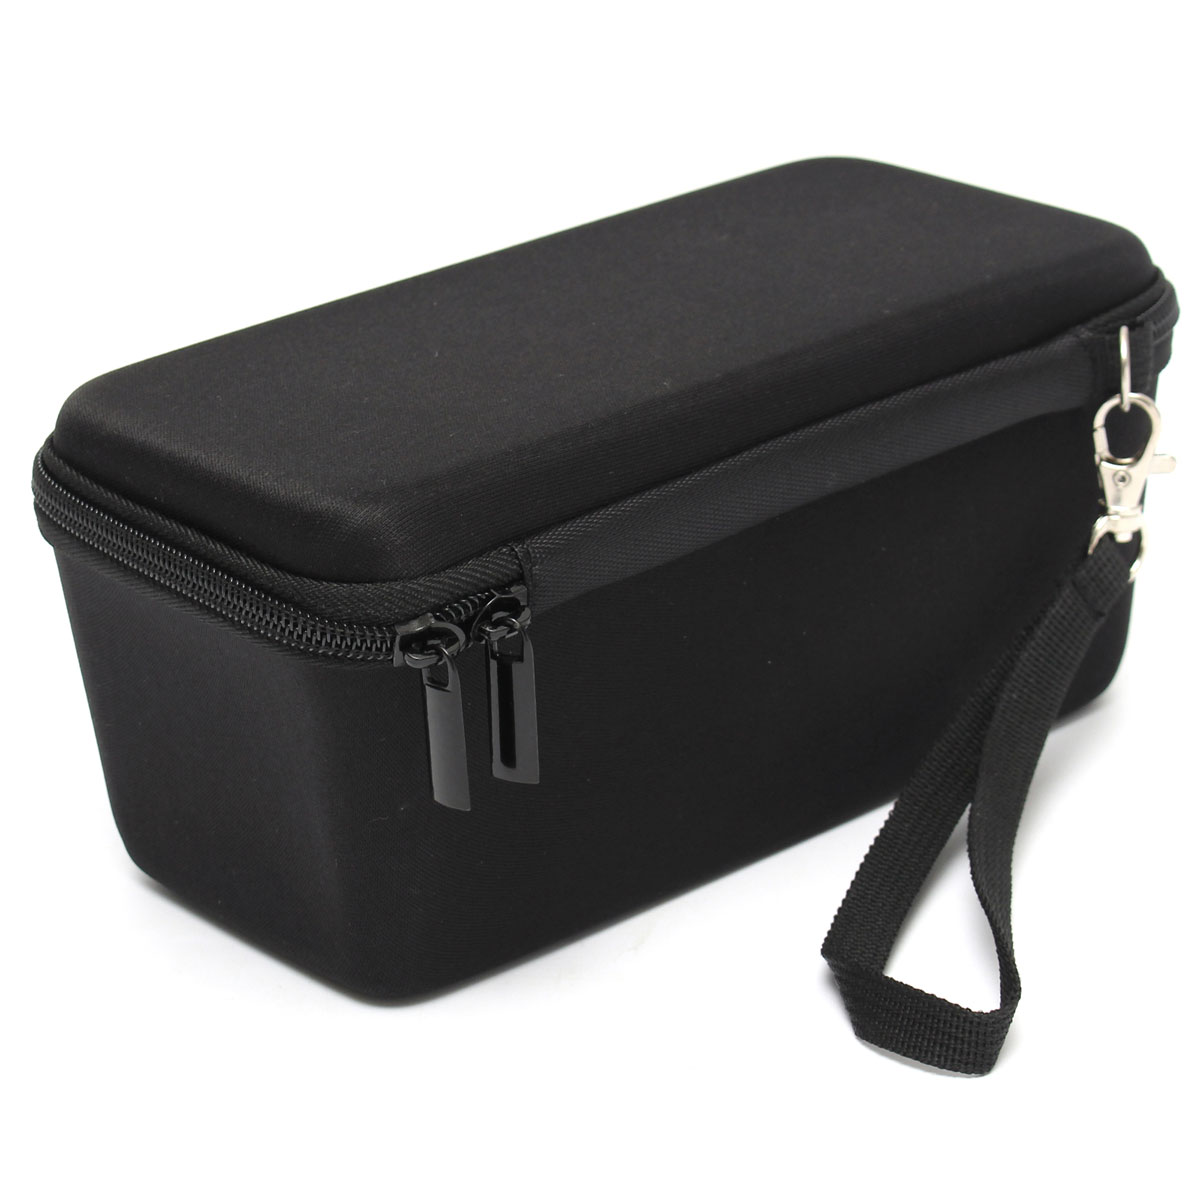 New EVA Big Capacity Protective Travel Case Bag Box Portable For JBL Charge 2 2+ Wireless Bluetooth Speaker High Quality